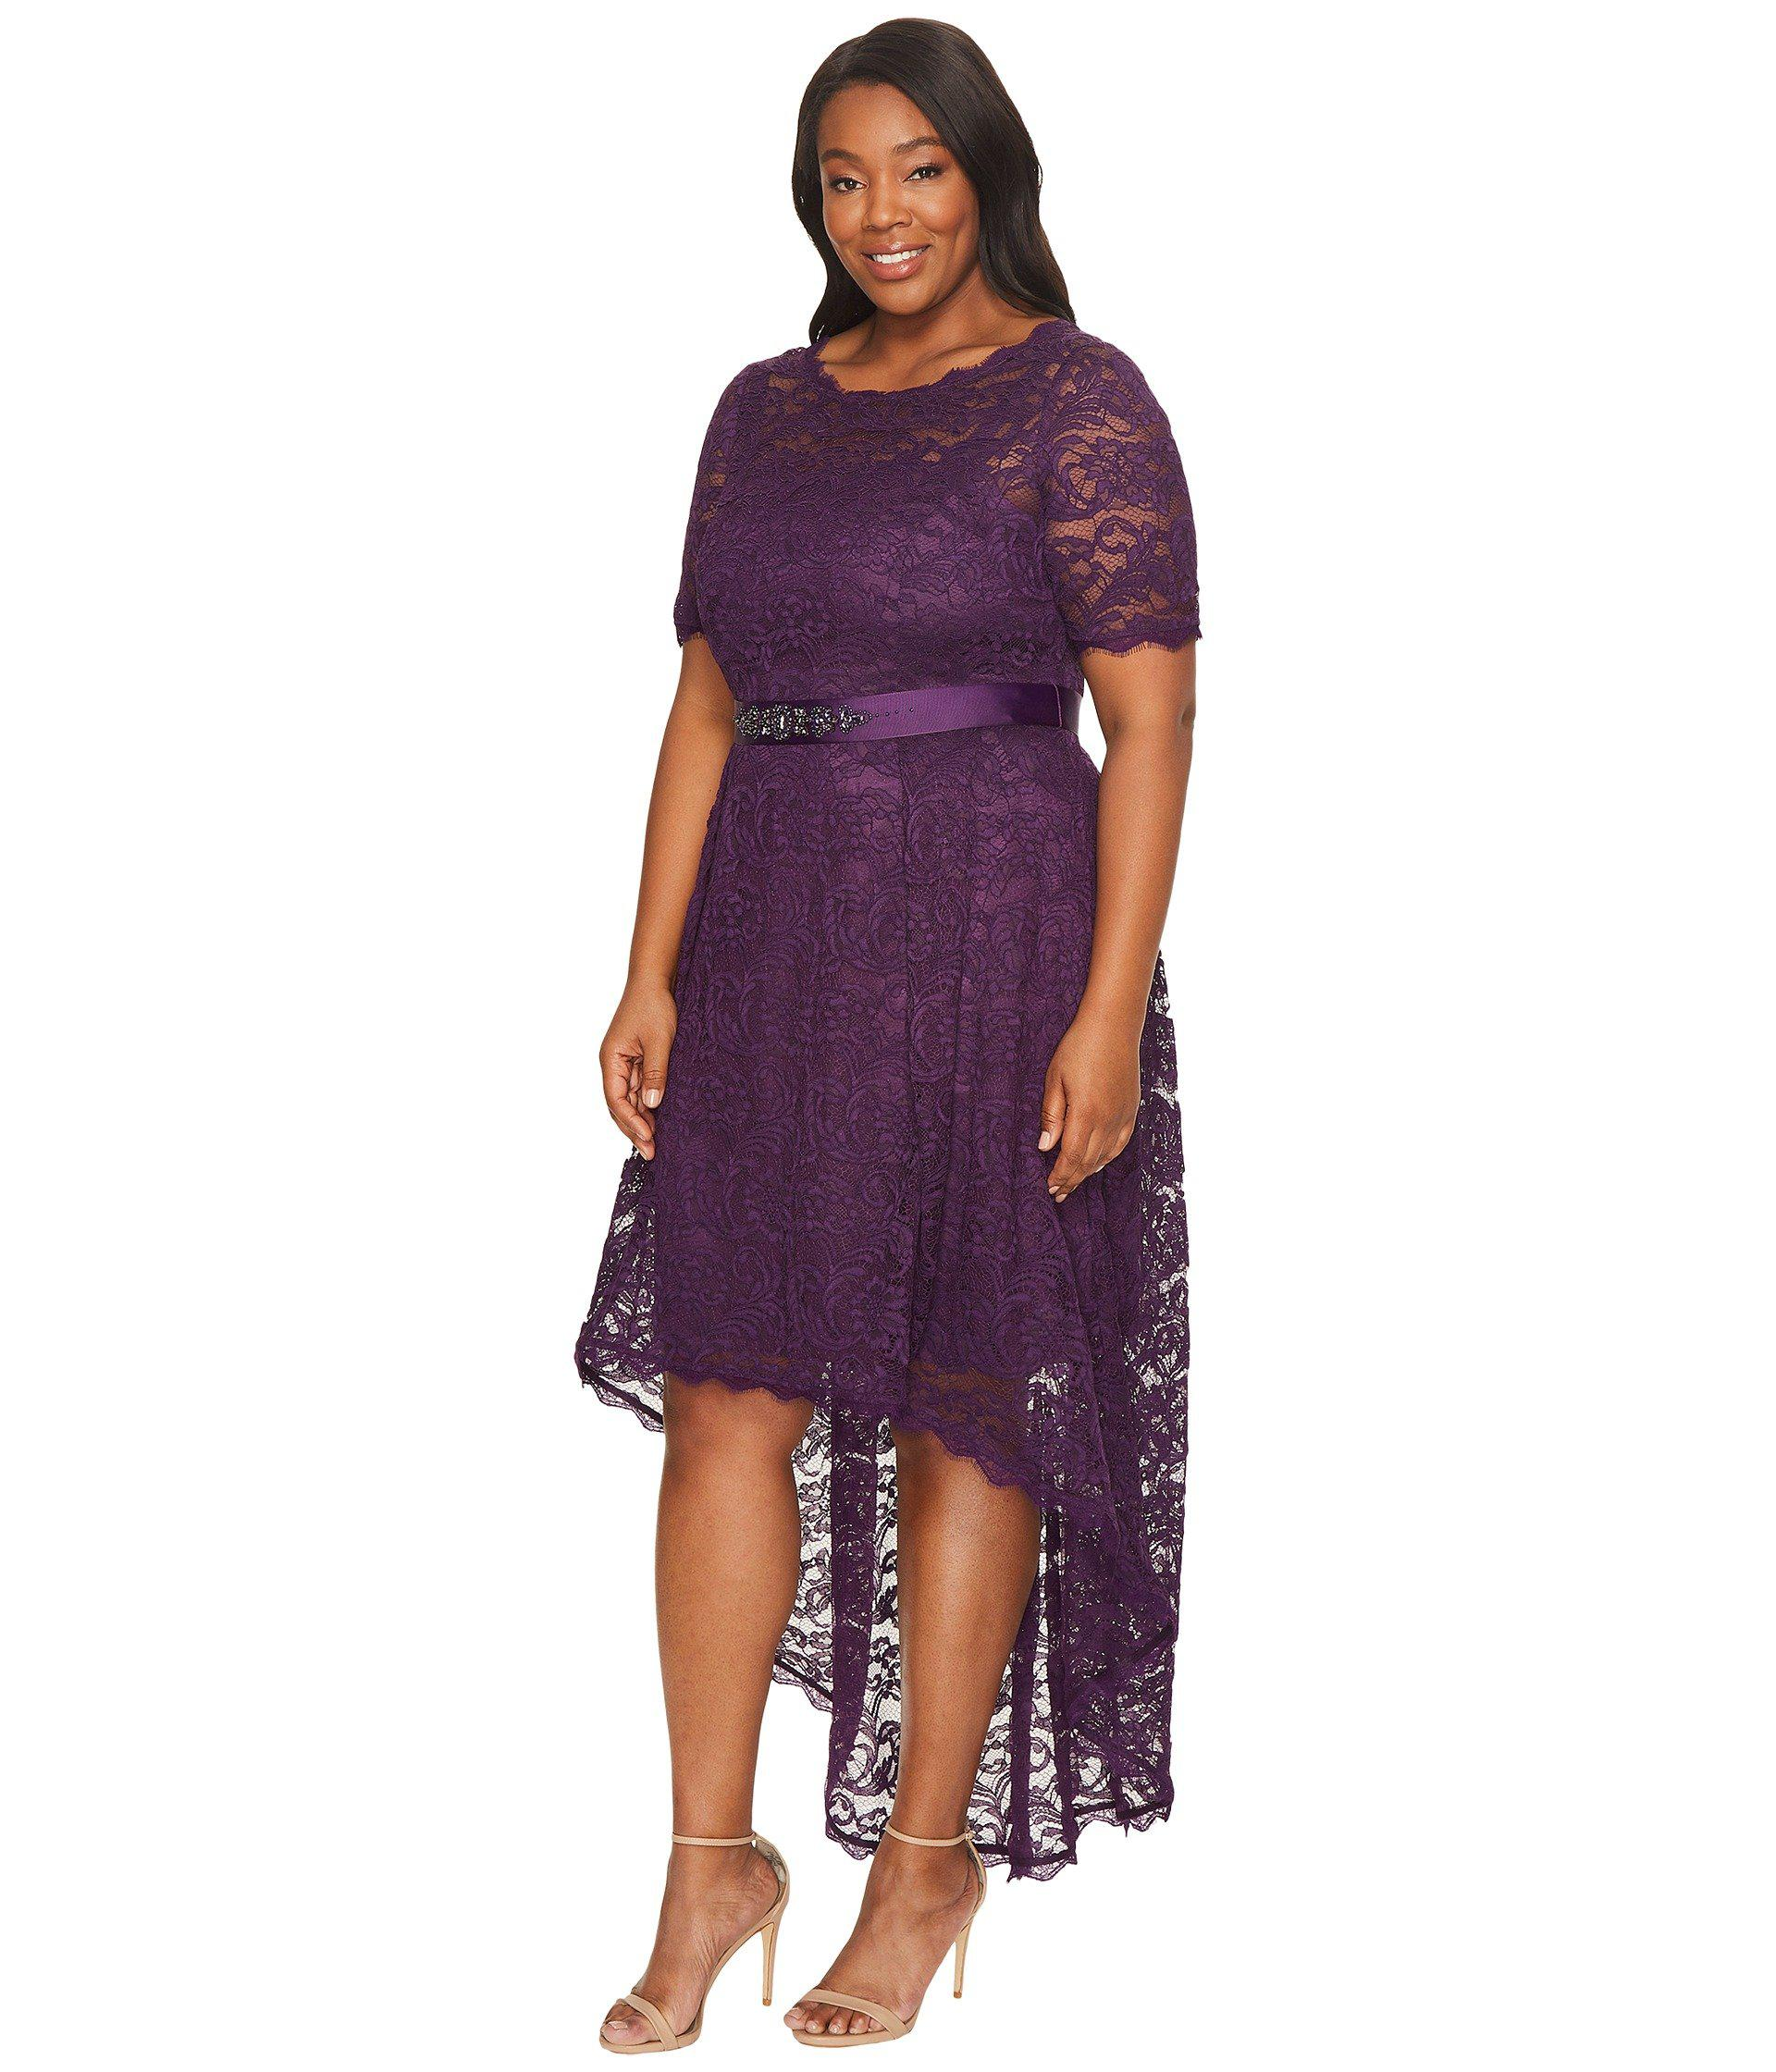 Plus Size Short Sleeve Lace Dress With High-low Hem